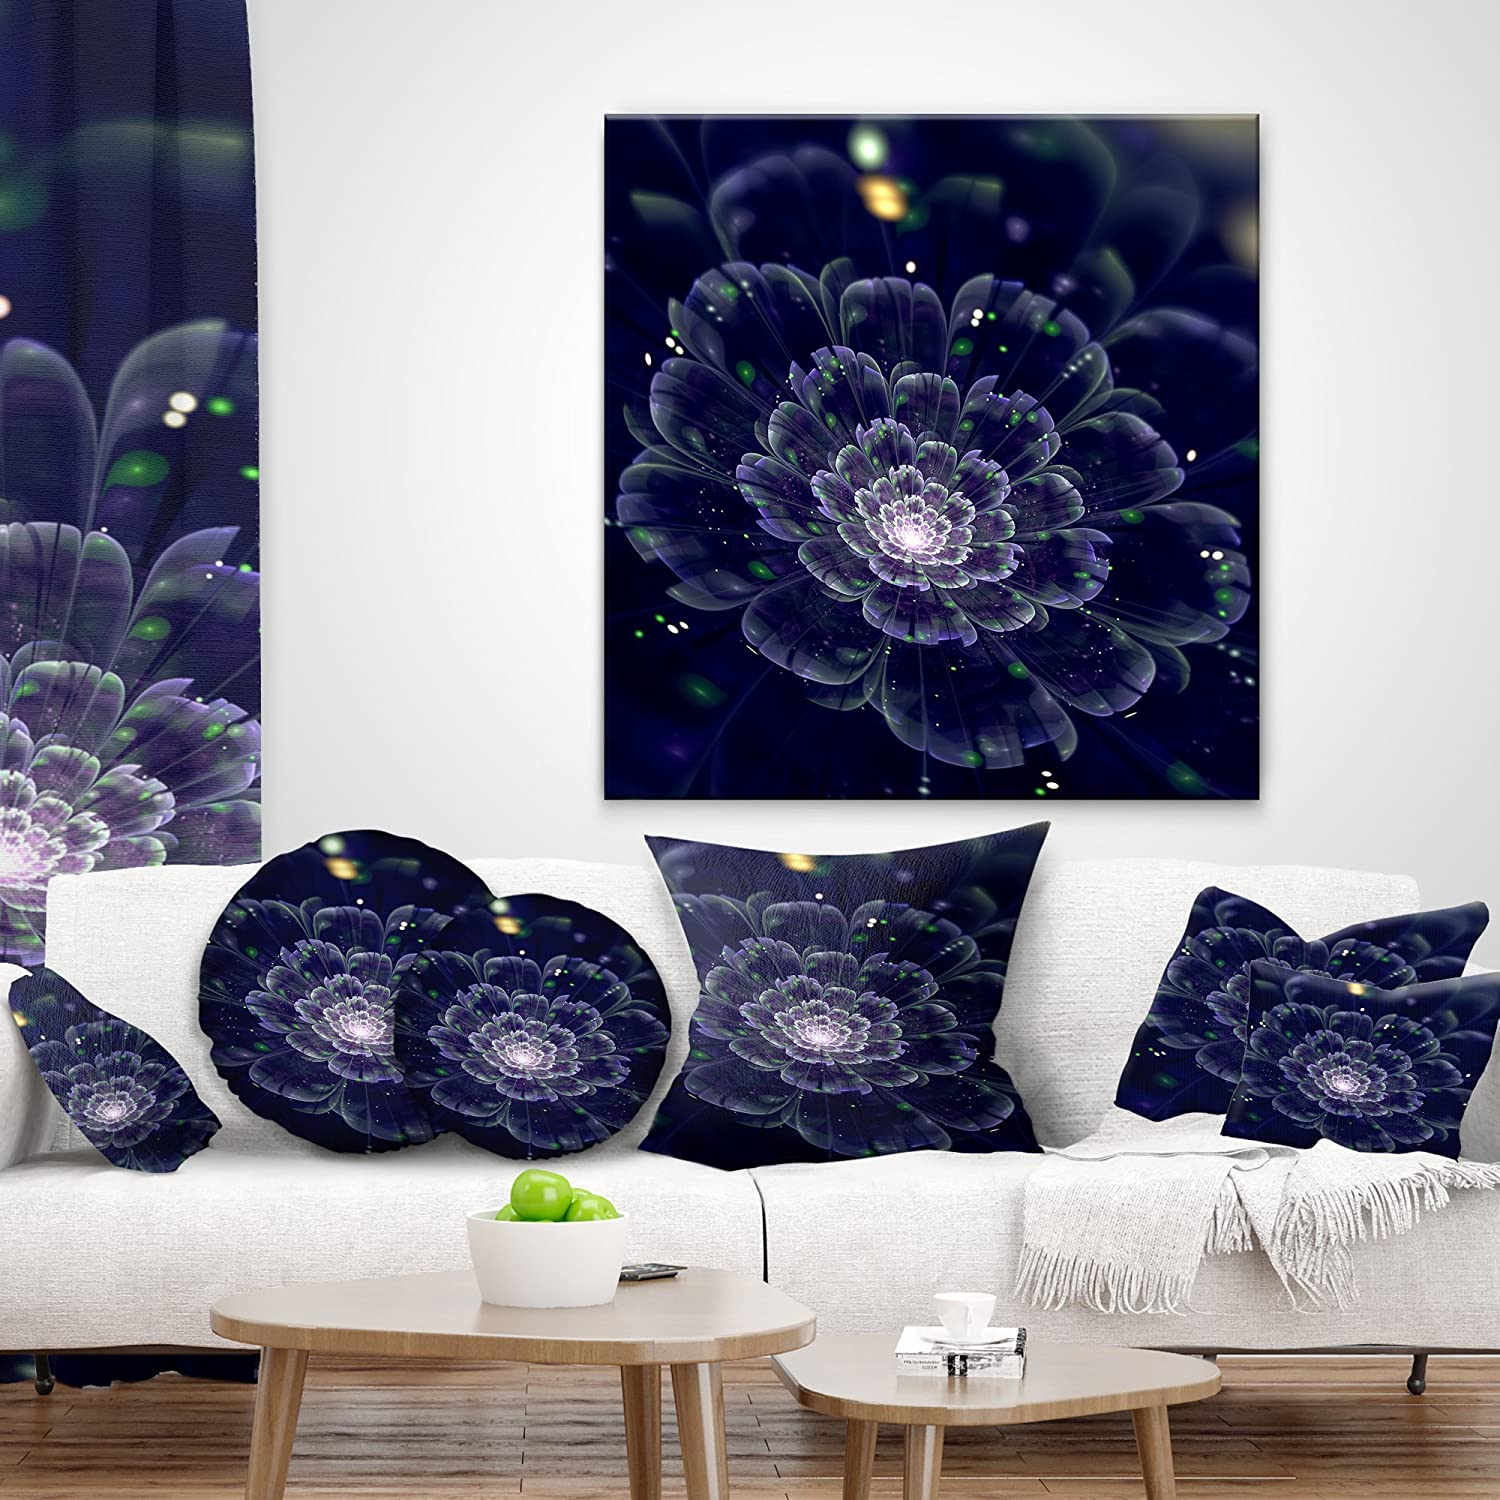 x 18 in Designart CU11879-18-18 Dark Blue Fractal Flower Digital Art Floral Throw Cushion Pillow Cover for Living Room Cushion Cover Printed on Both Side Pillow Insert Sofa 18 in